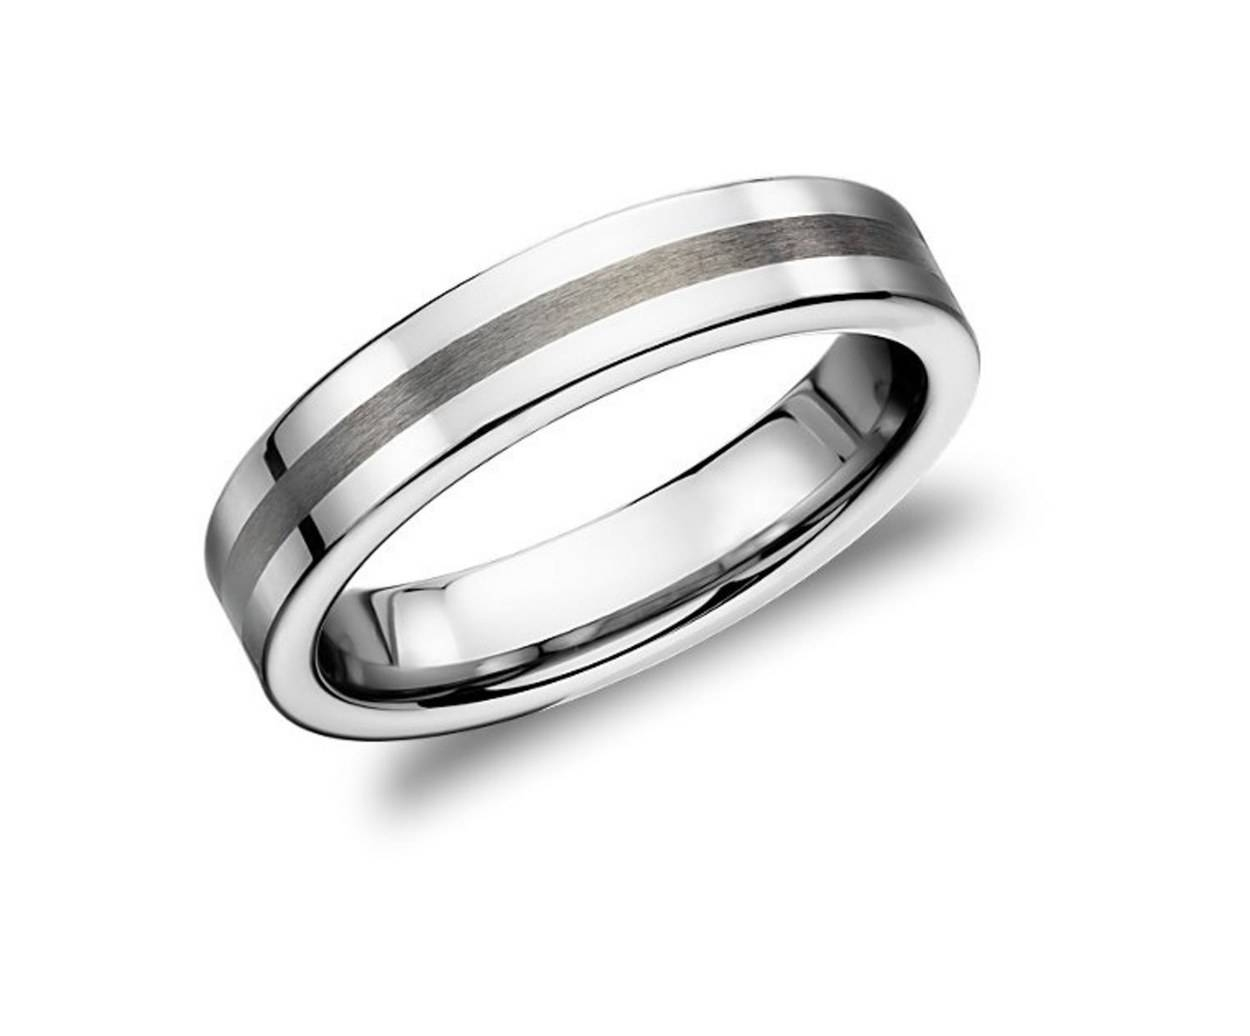 15 Men's Wedding Bands Your Groom Won't Want To Take Off | Glamour Throughout Dark Metal Mens Wedding Bands (View 1 of 15)